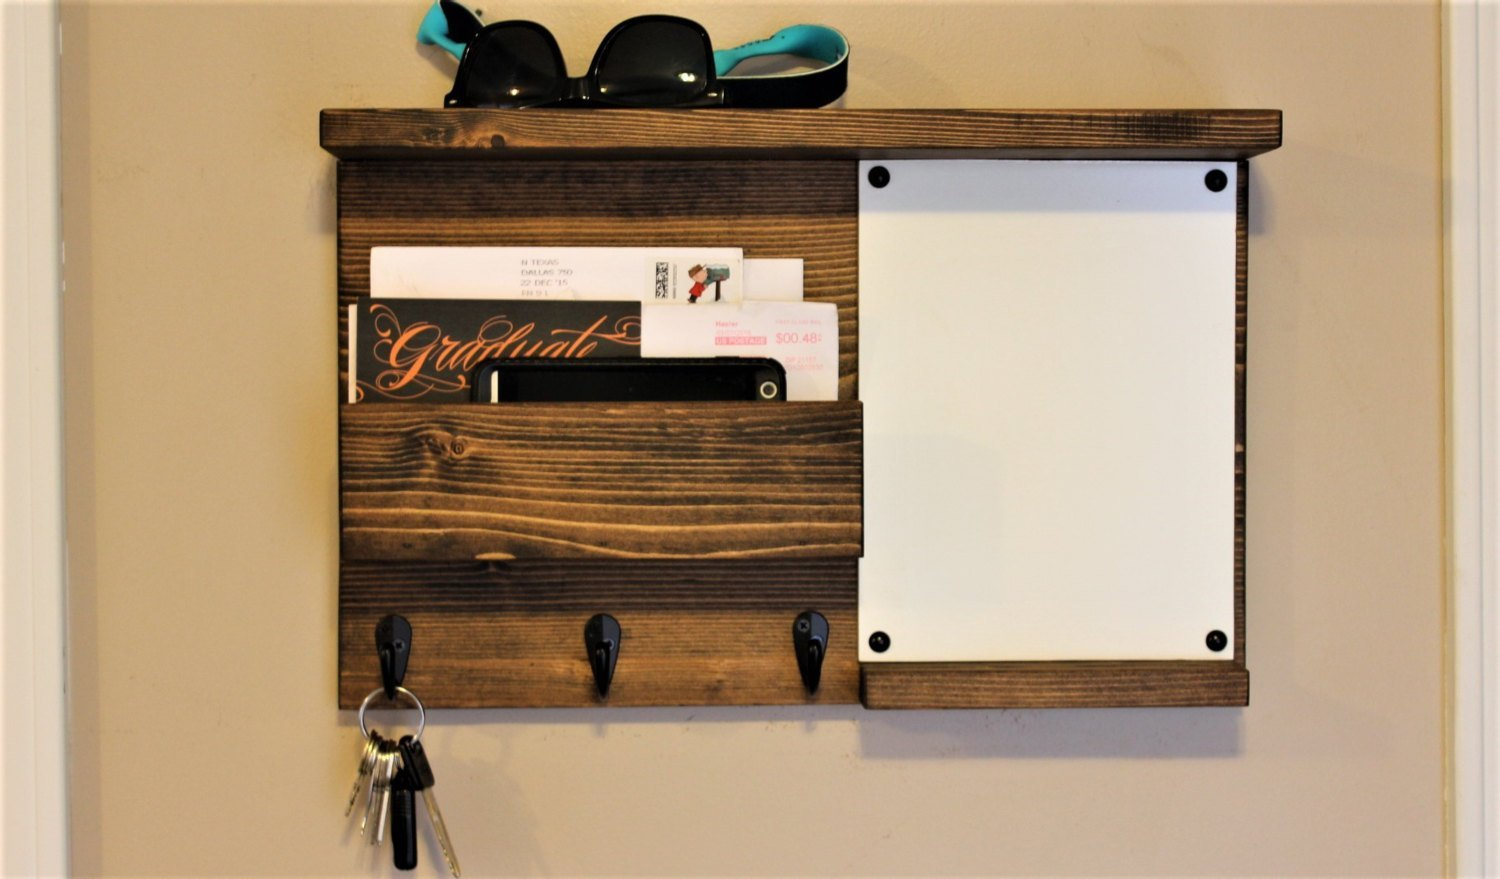 Dry Erase with Shelf Mail Organizer, Mail Holder, Rustic Organizer, Key Holder, White Board